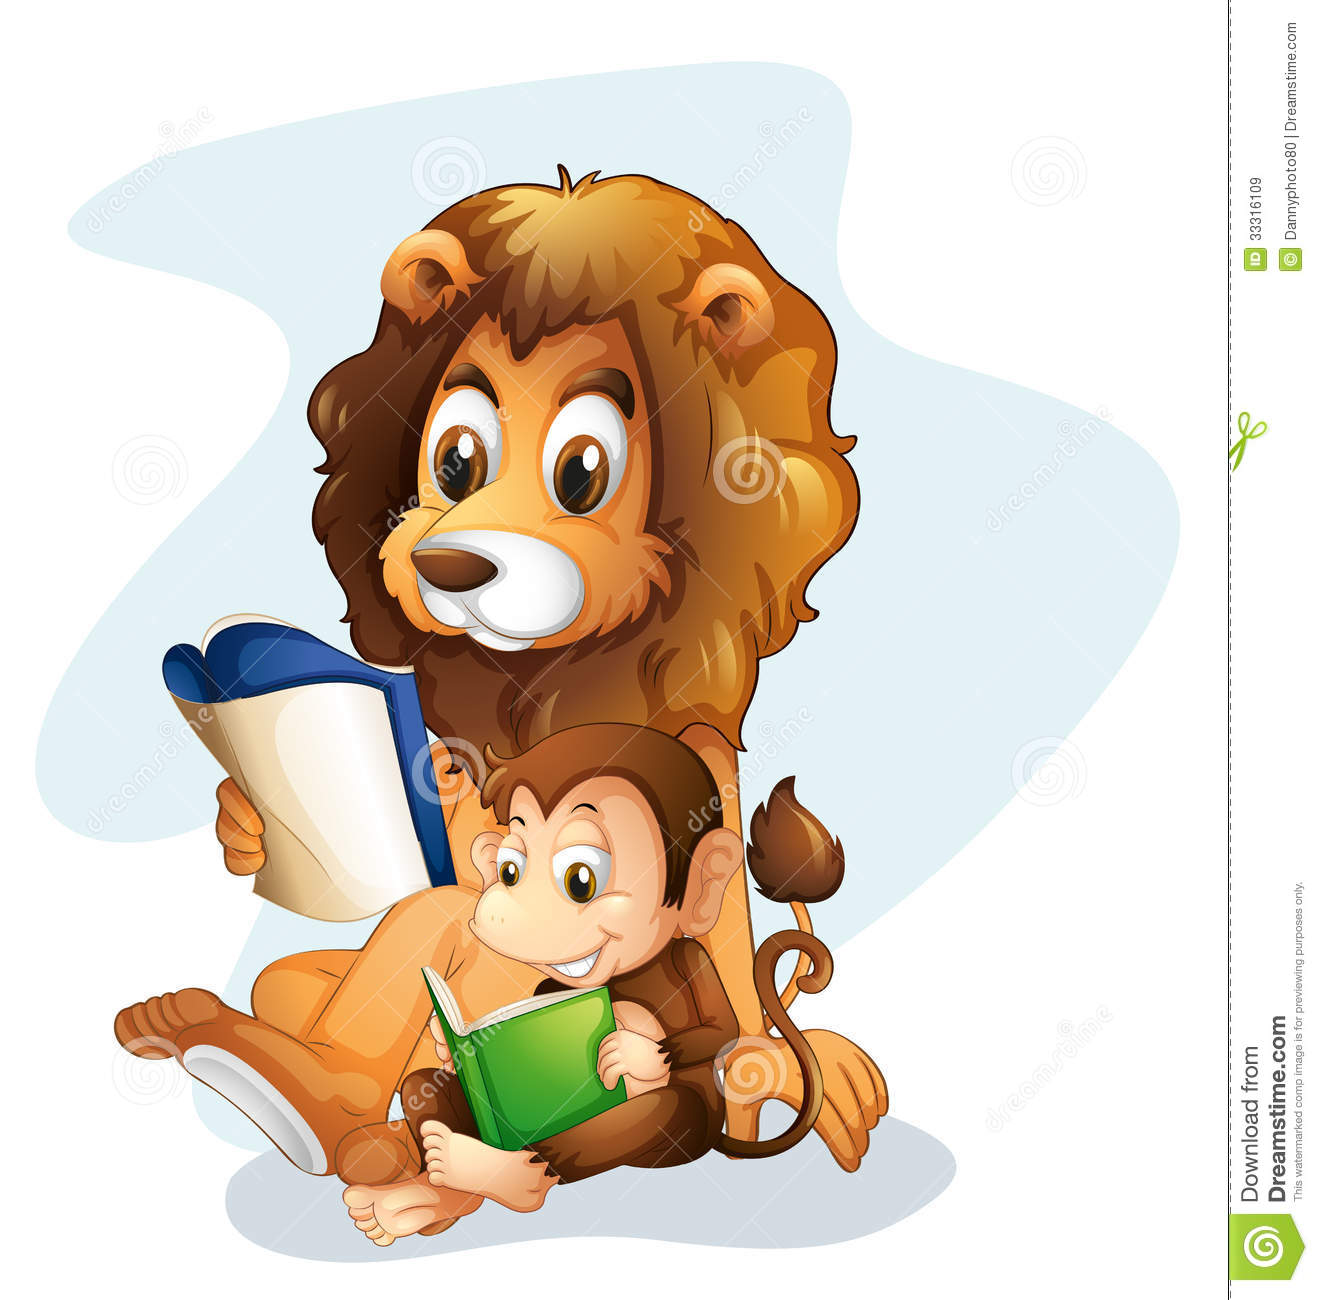 A Monkey And A Lion Reading Books Royalty Free Stock